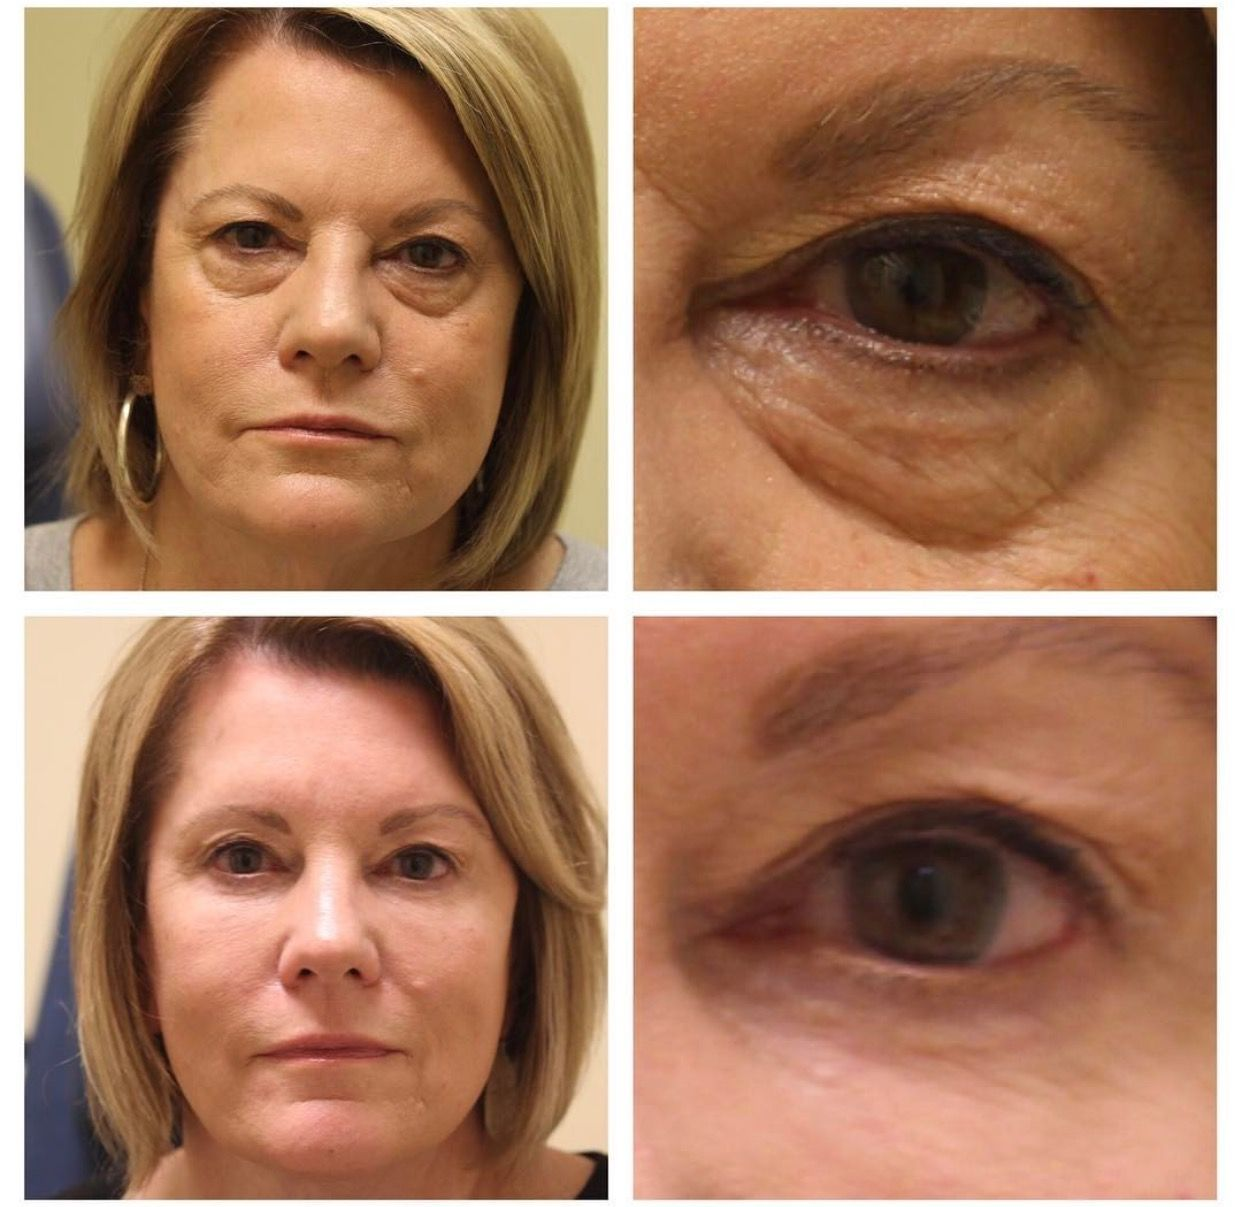 4 Months After Conservative Browlift And Lower Blepharoplasty No